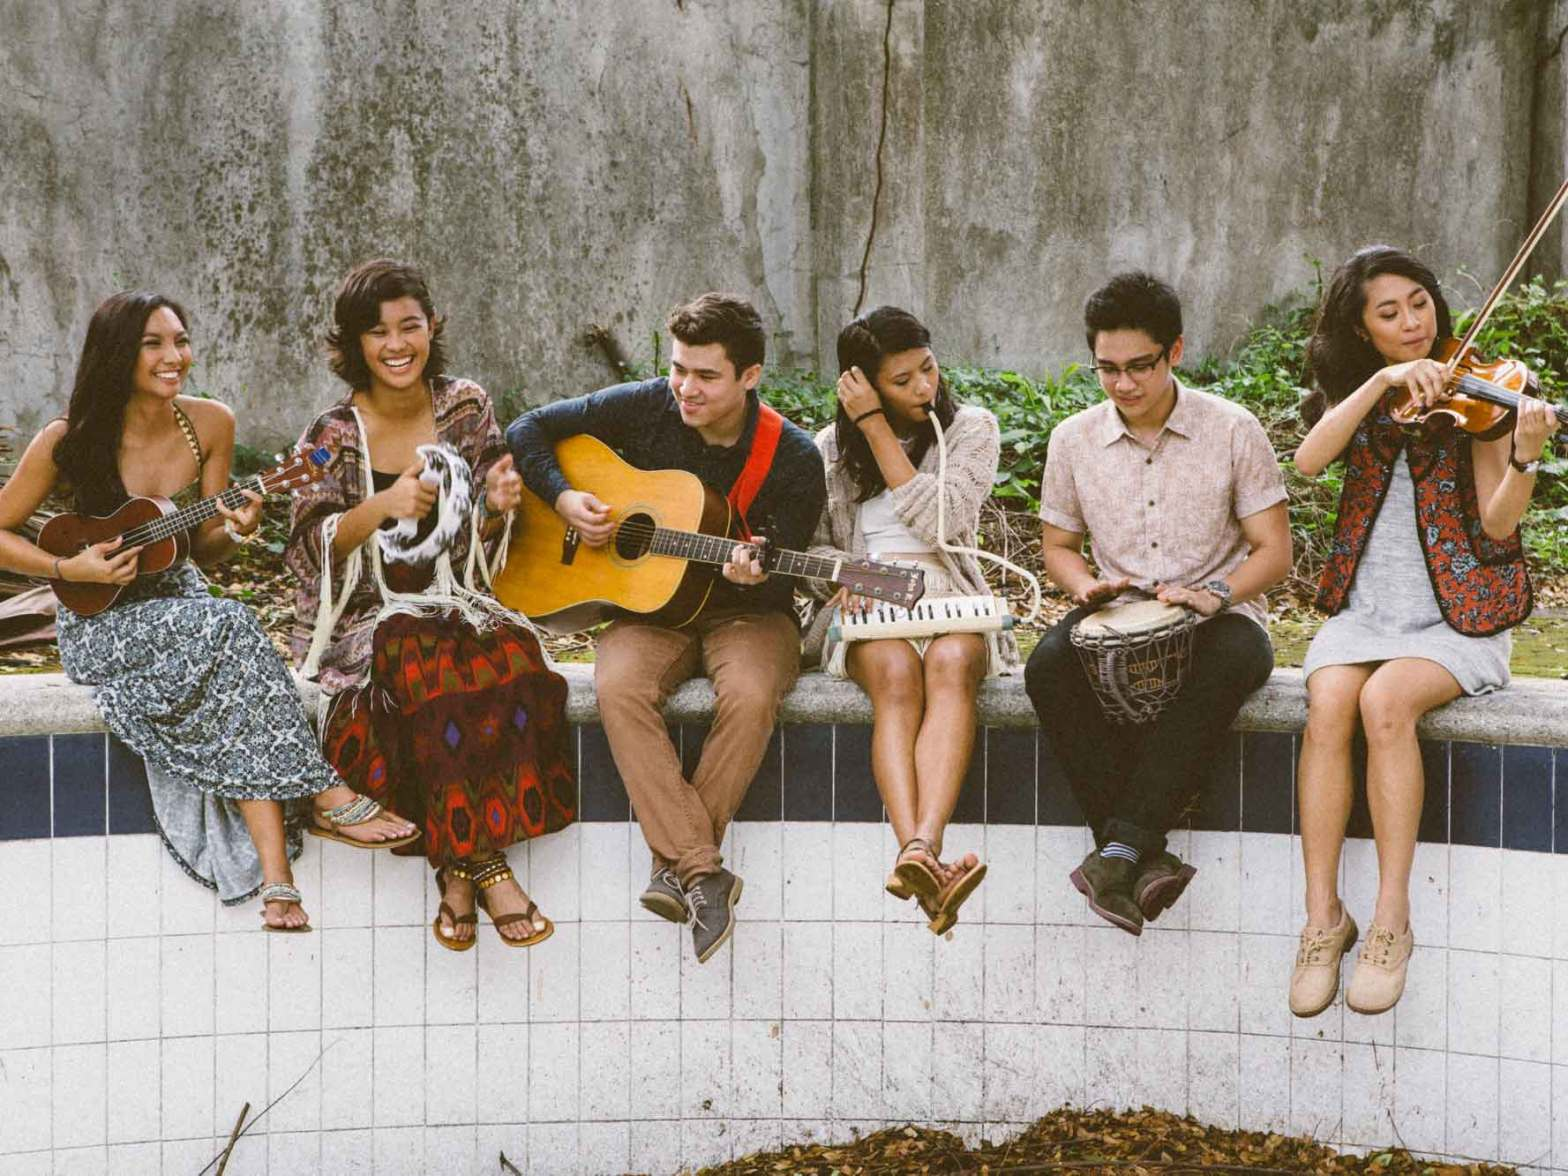 The Ransom Collective promotional photo